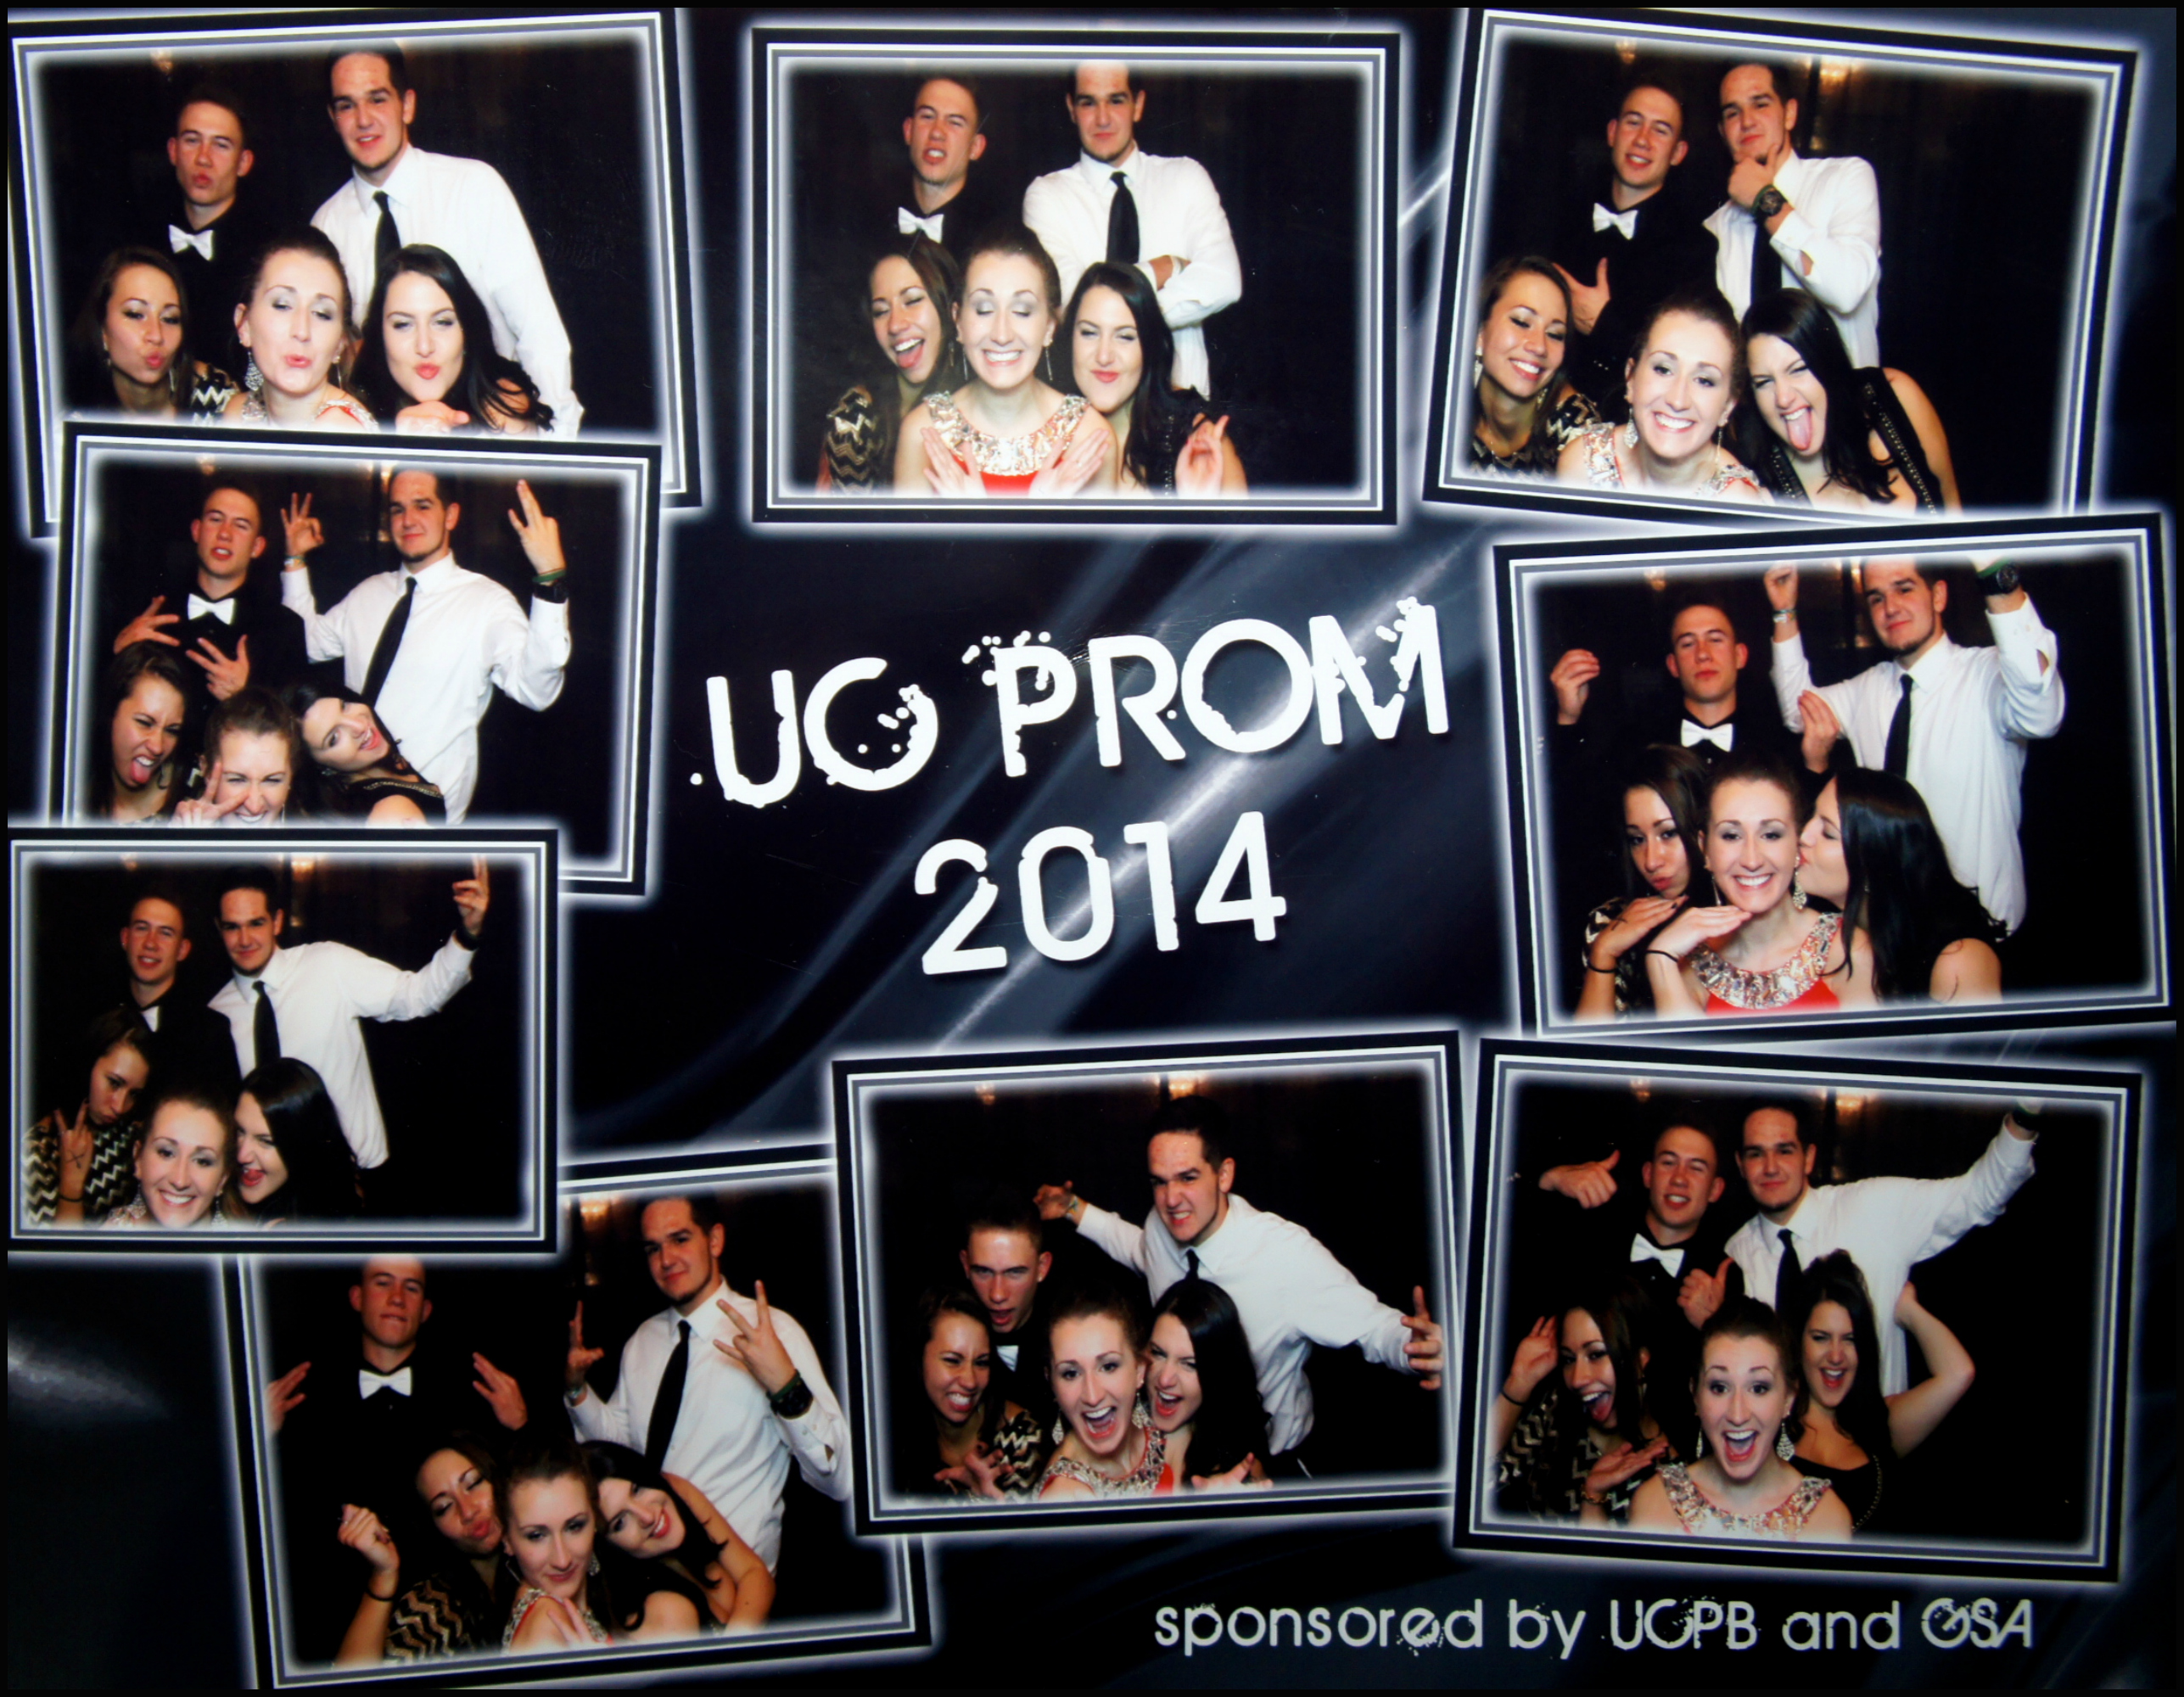 Friends & I having a blast in the photo booth! :)